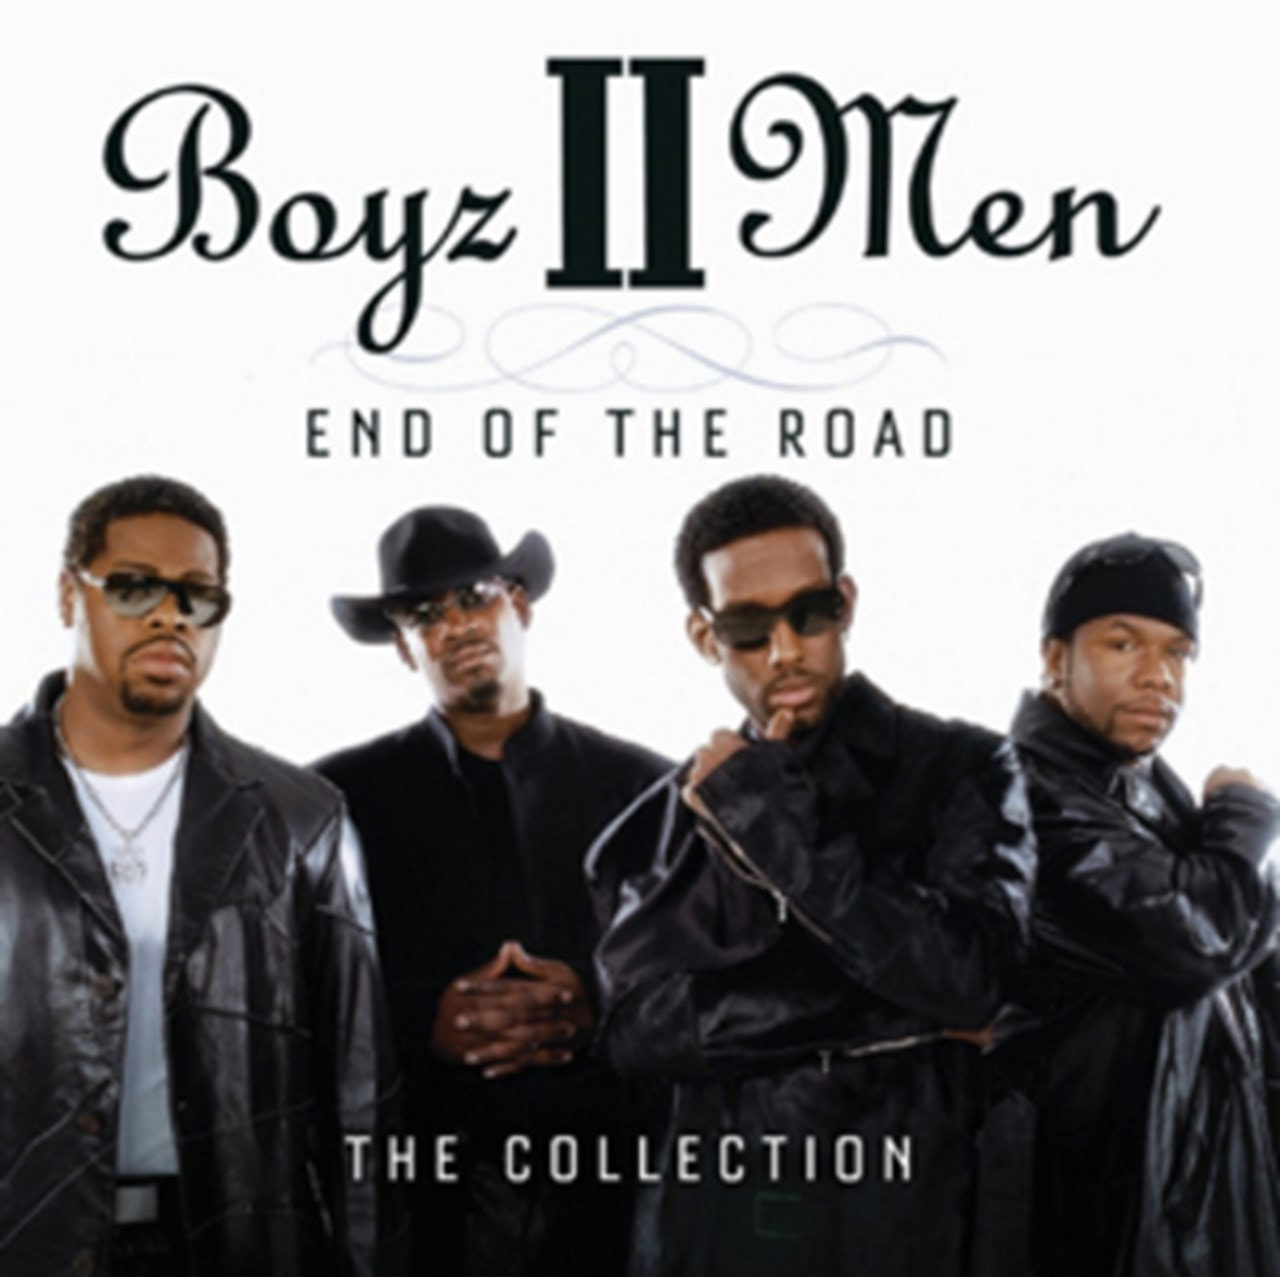 End of the Road: The Collection - 1